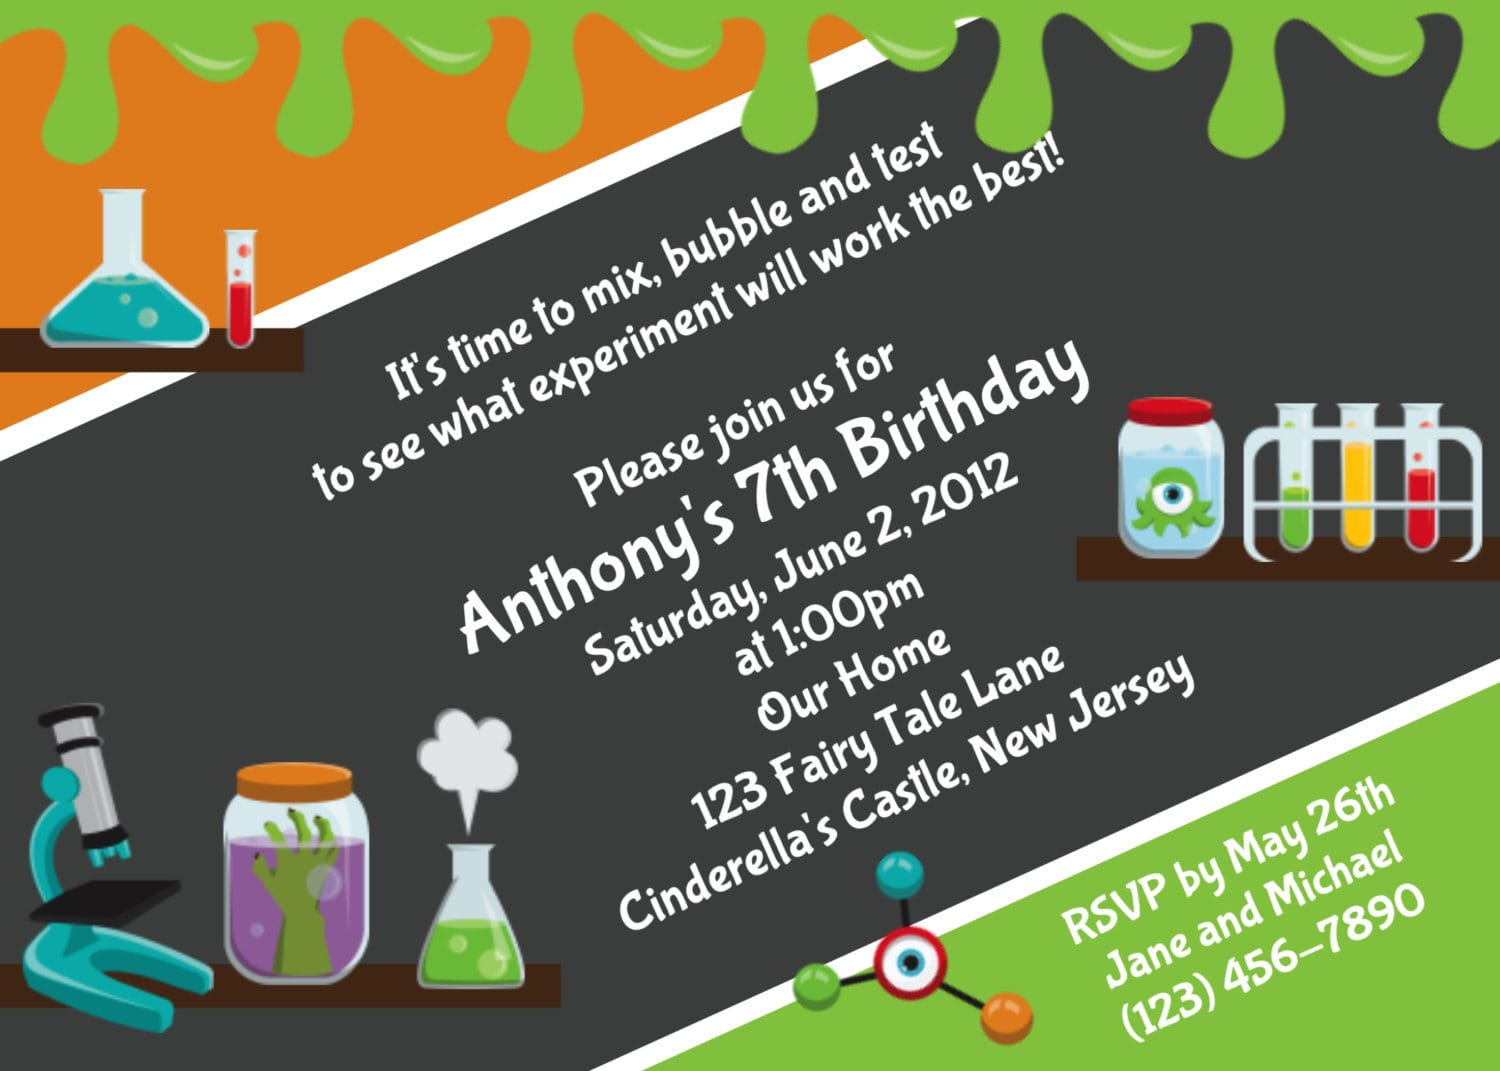 Mad science party games ideas invitations and party supplies linkedscience party ideas mad lab science partykaras party ideas science themed birthday partykaras party ideas mad hatter tea partyscience party ideas filmwisefo